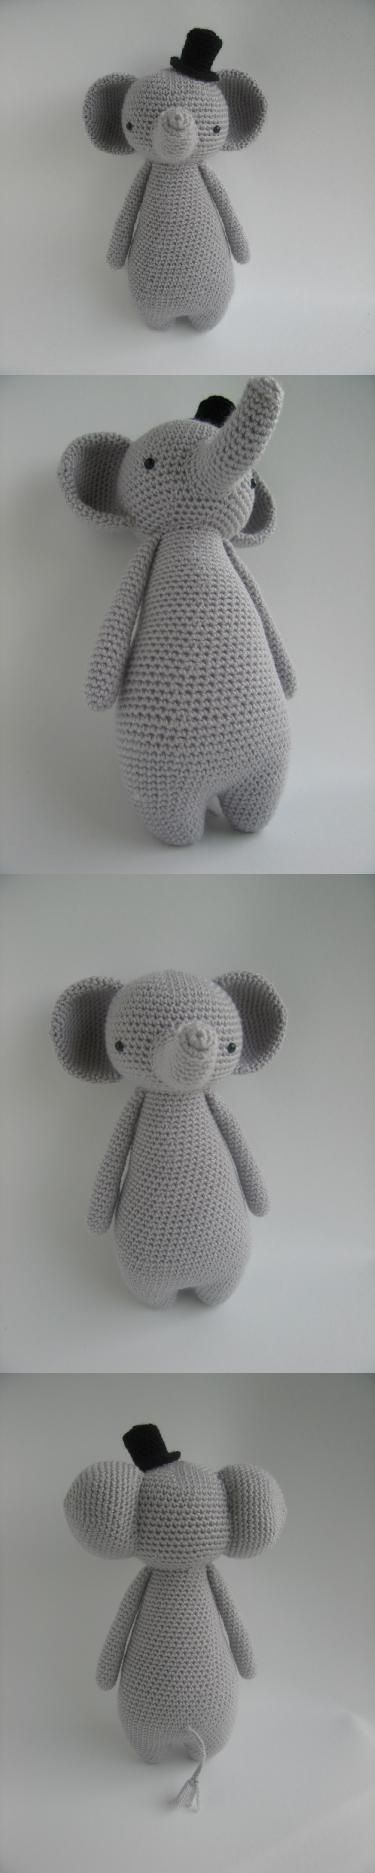 Tall Elephant With Hat Amigurumi Pattern by Little Bear Crochet